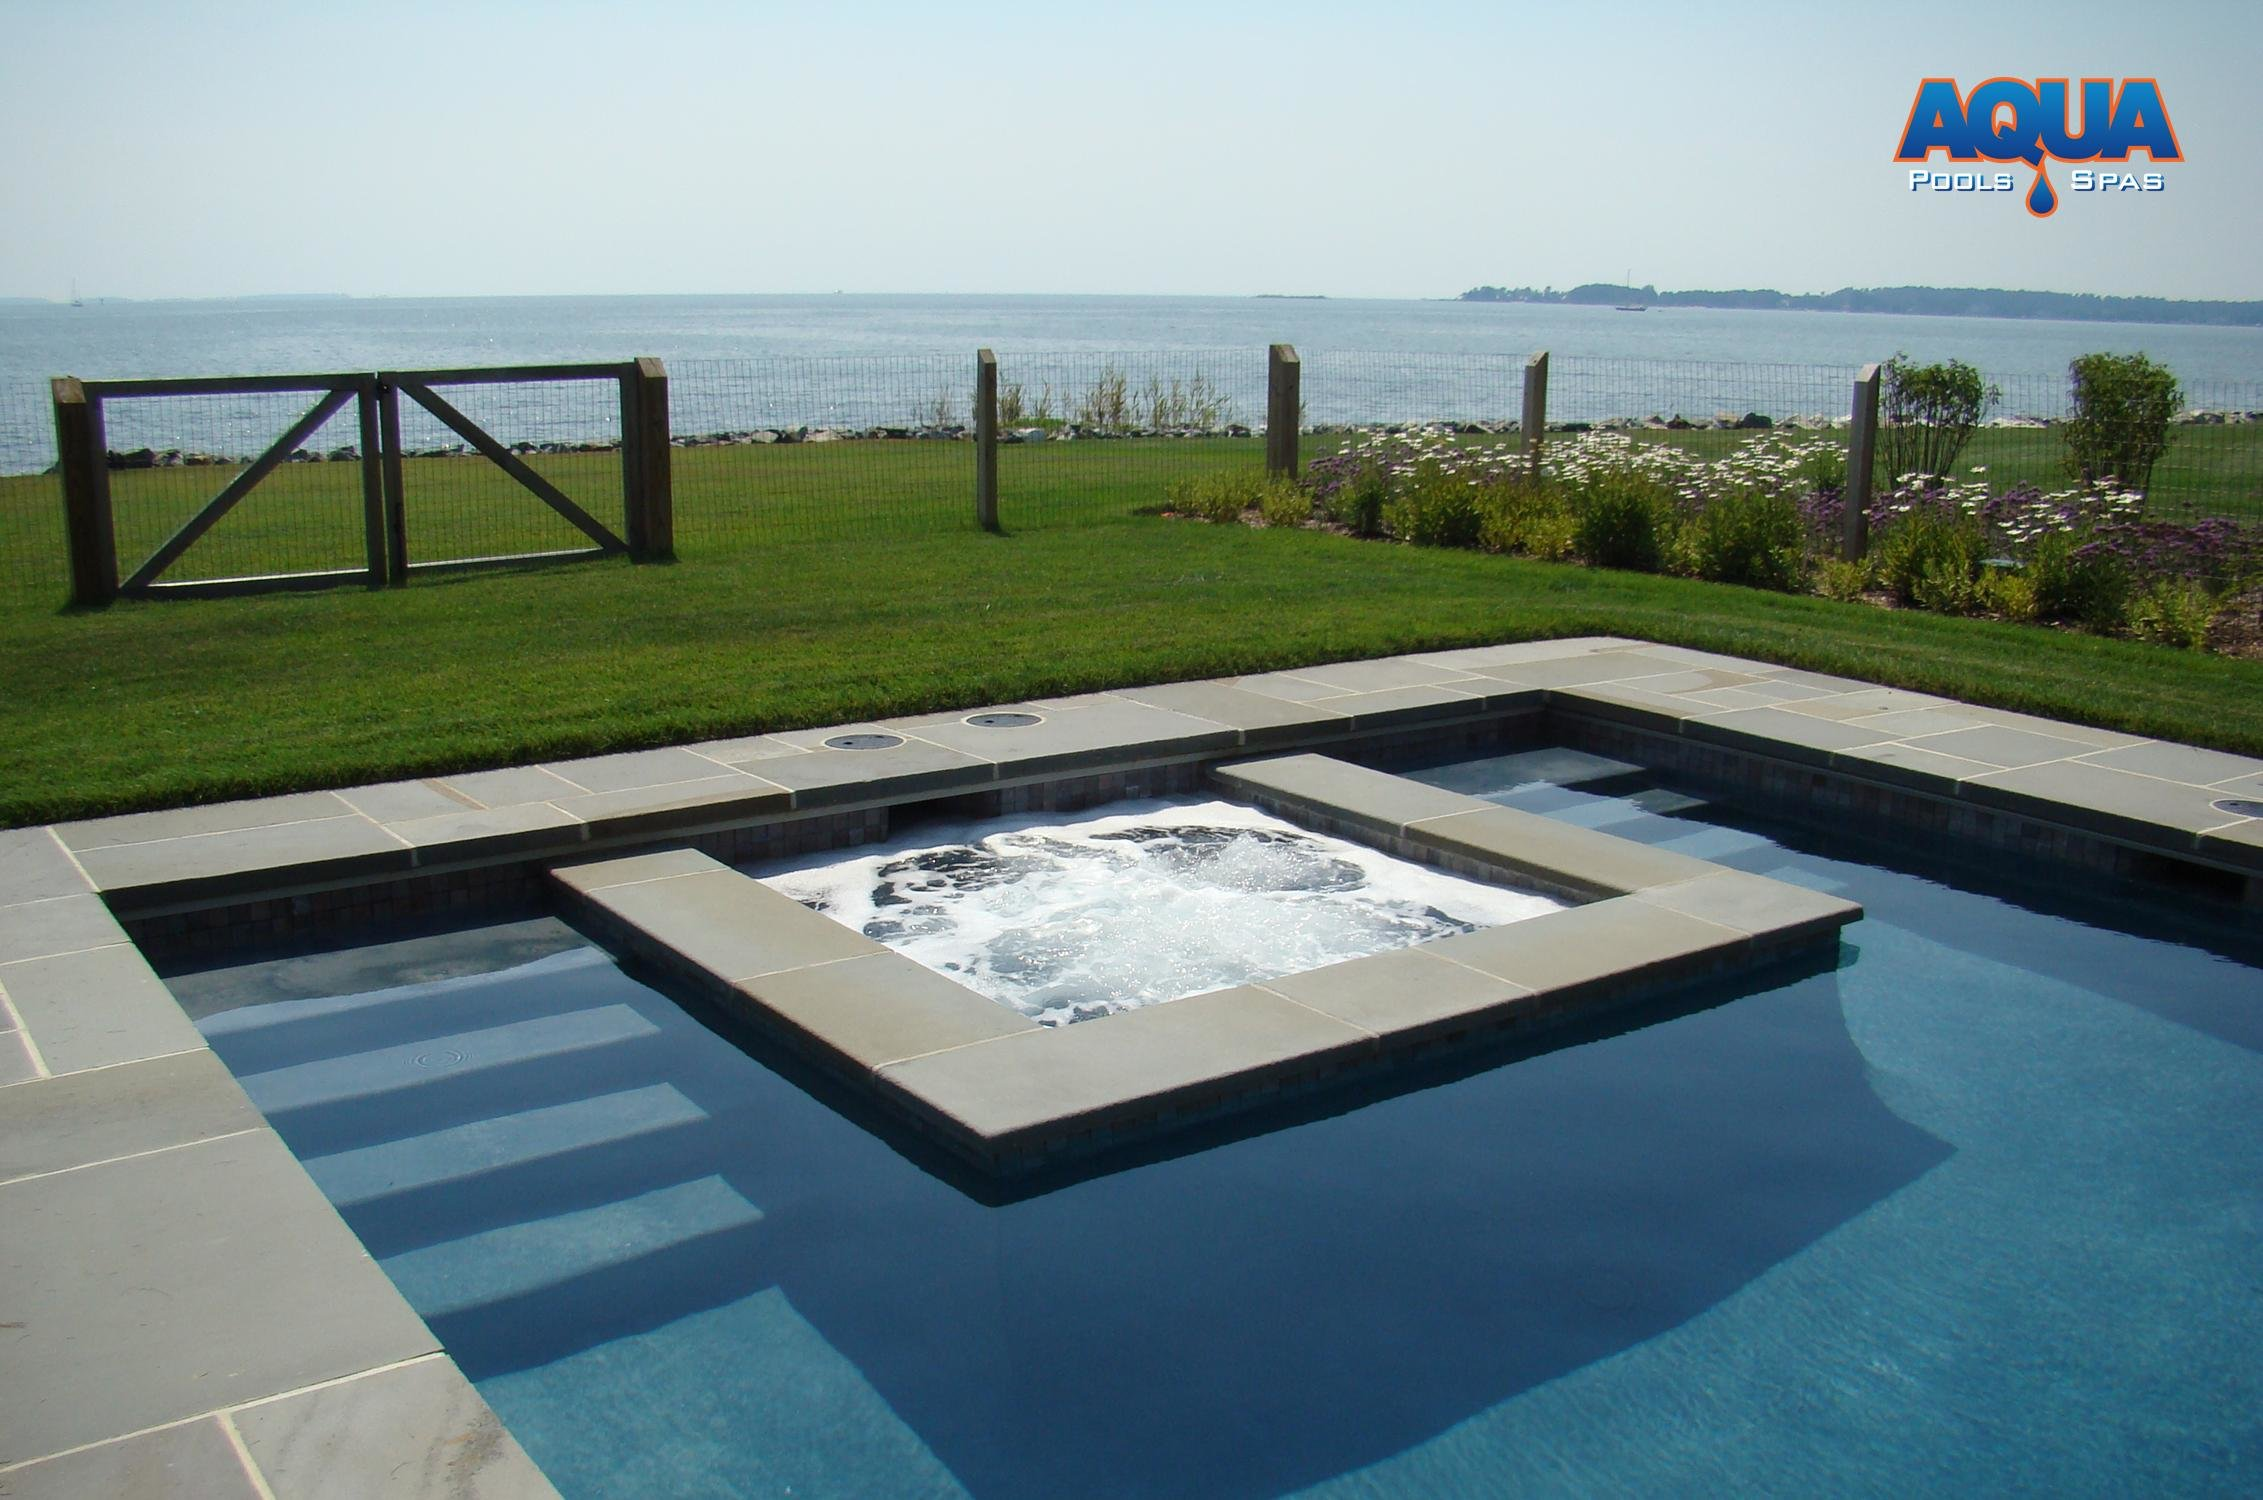 Jacuzzi Pool Details Custom Spas Custom Gunite Hot Tubs Aqua Pools And Spas